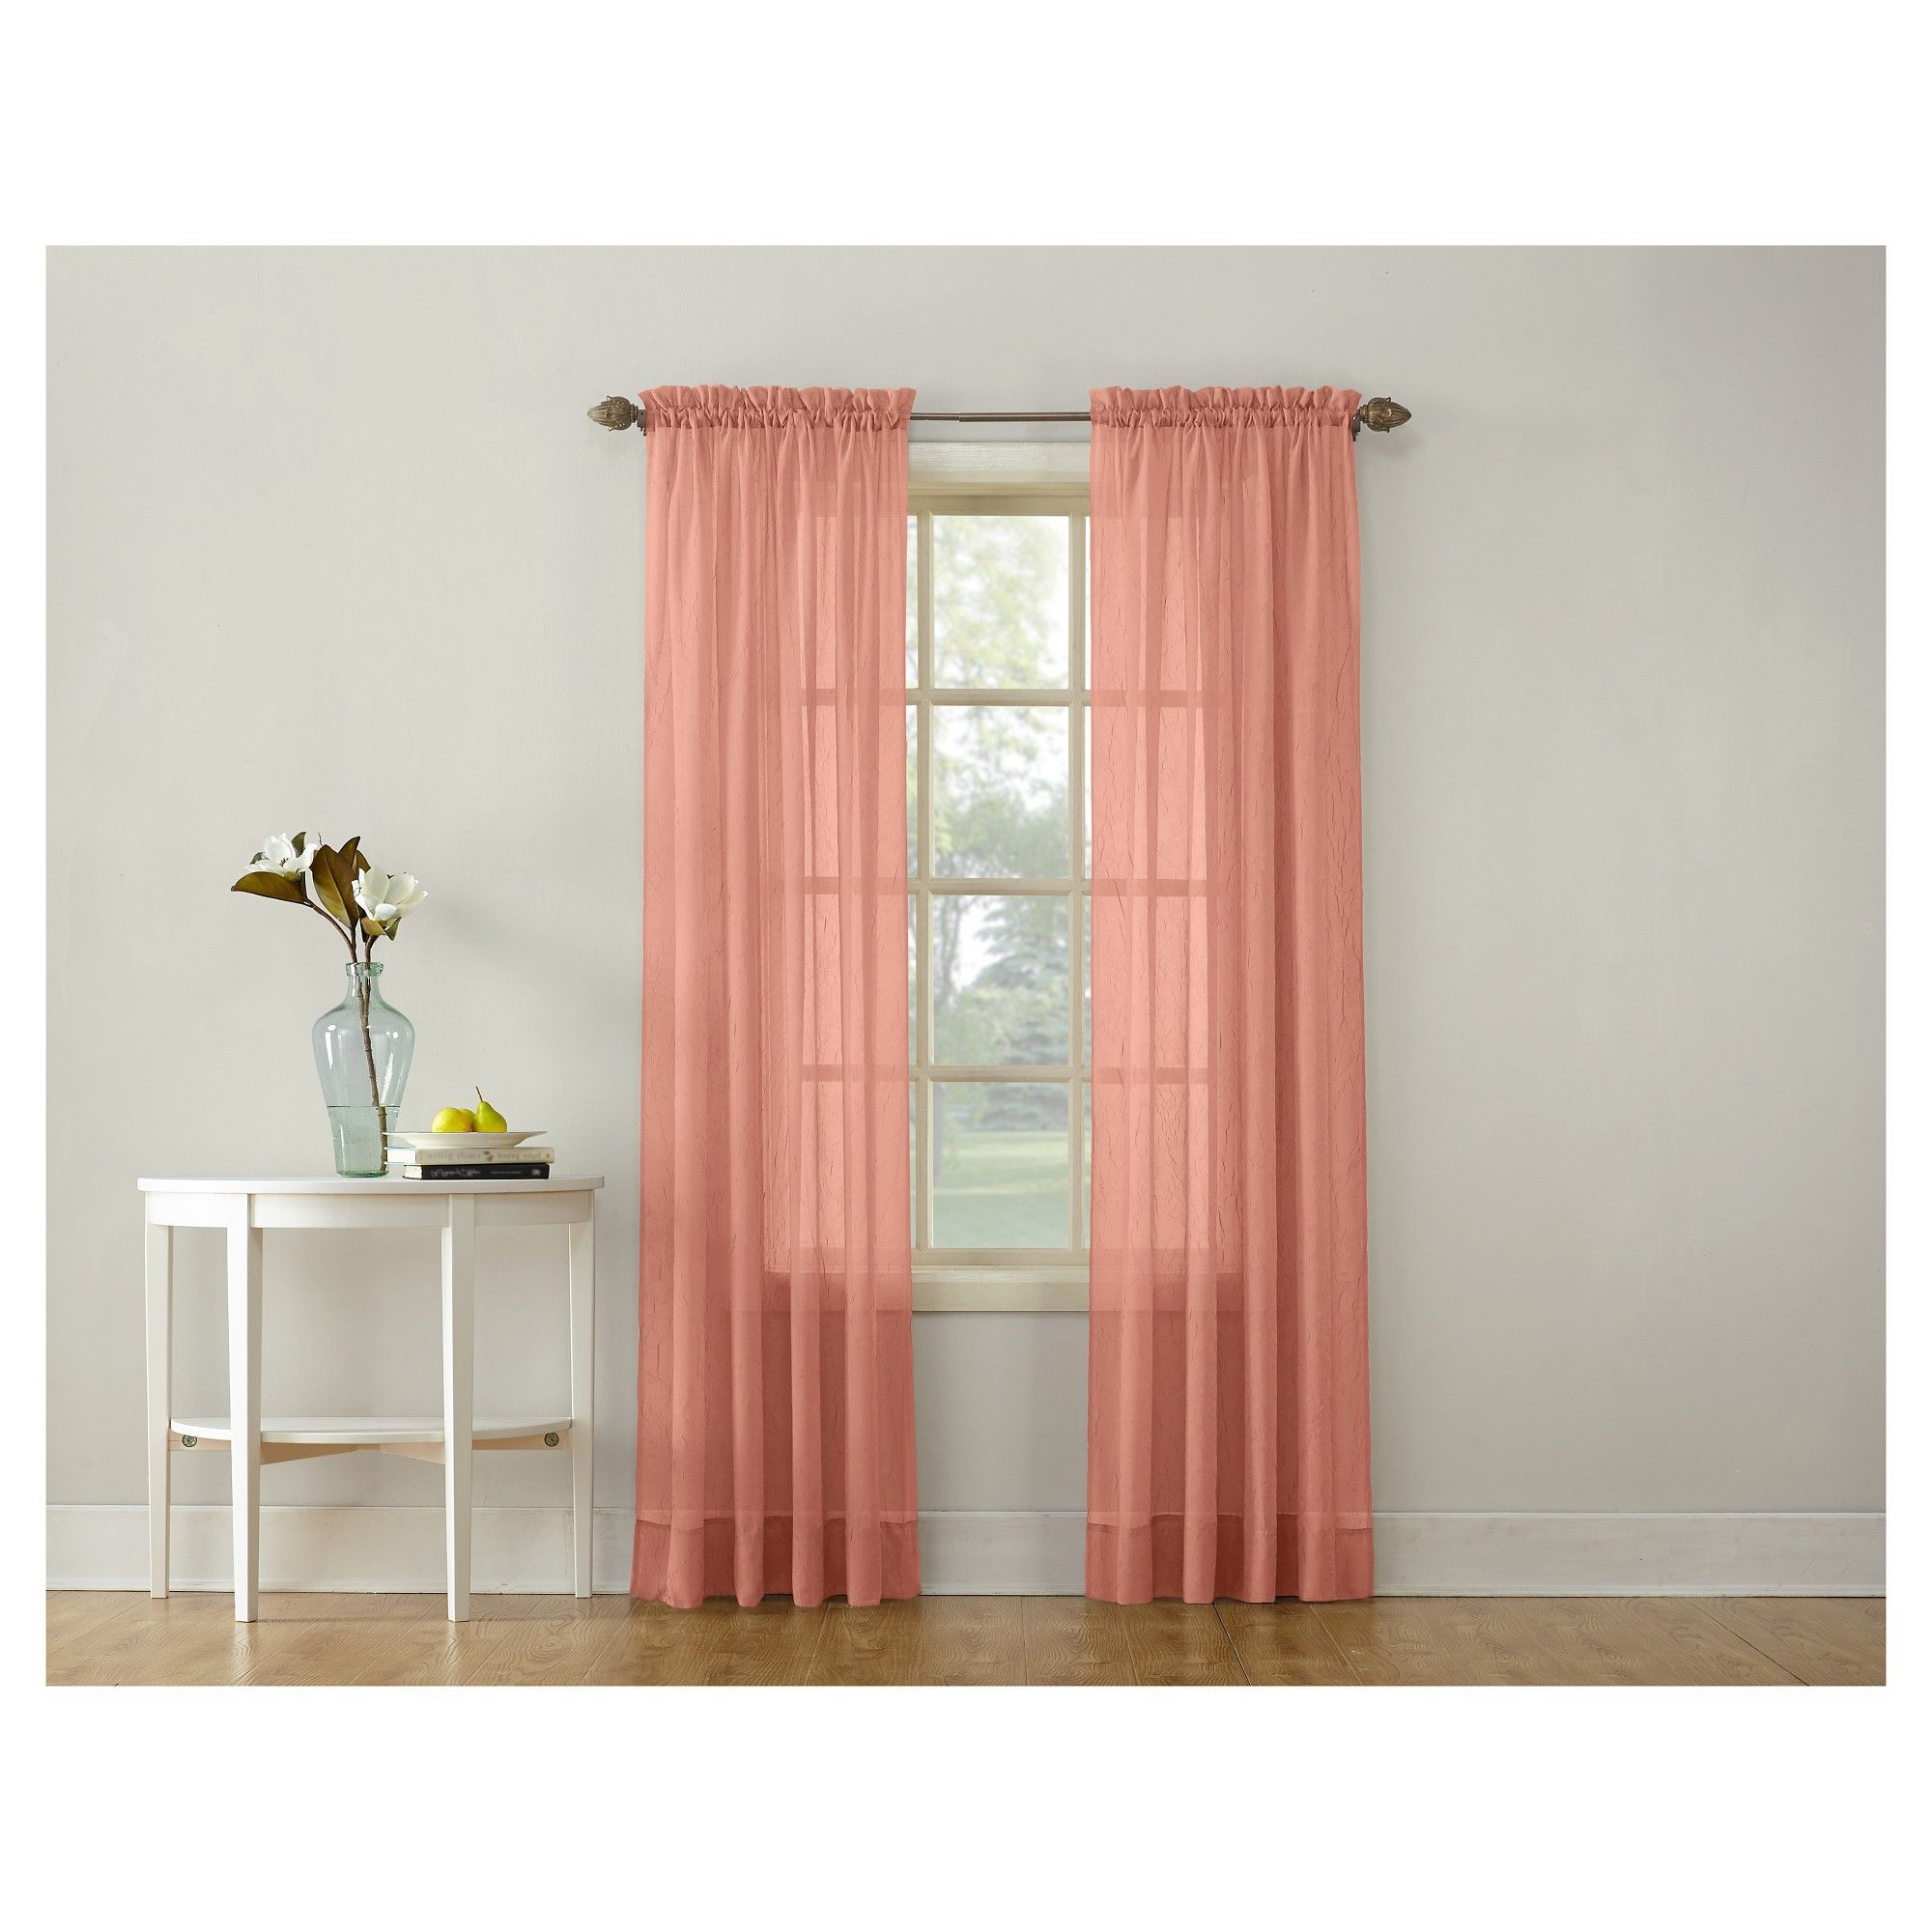 Erica Crushed Sheer Voile Grommet Curtain Panels Inside Well Known Erica Crushed Sheer Voile Rod Pocket Curtain Panel Coral (View 18 of 20)